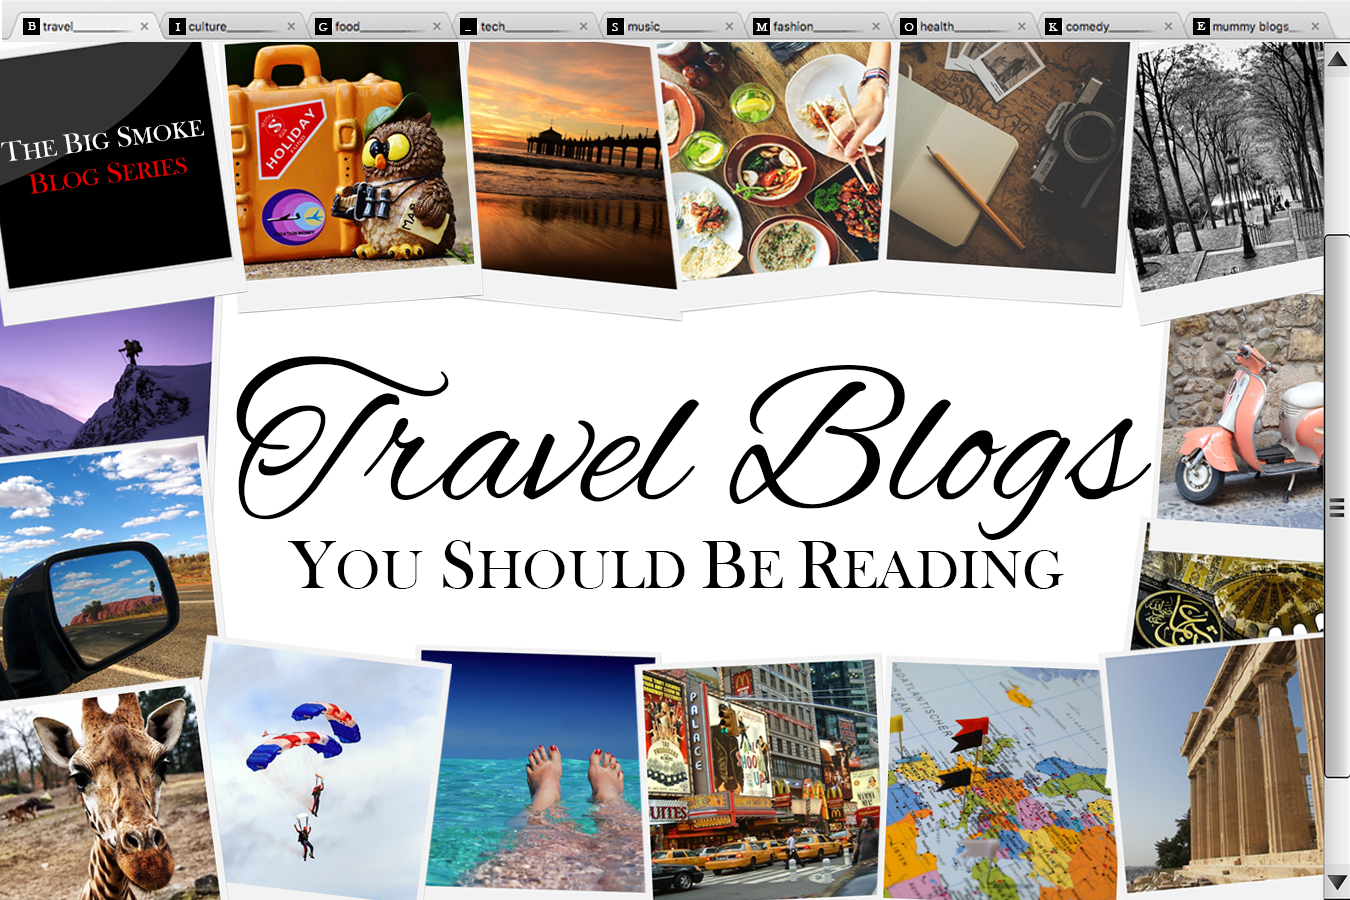 TBS Blog Series: Travel blogs you should be reading